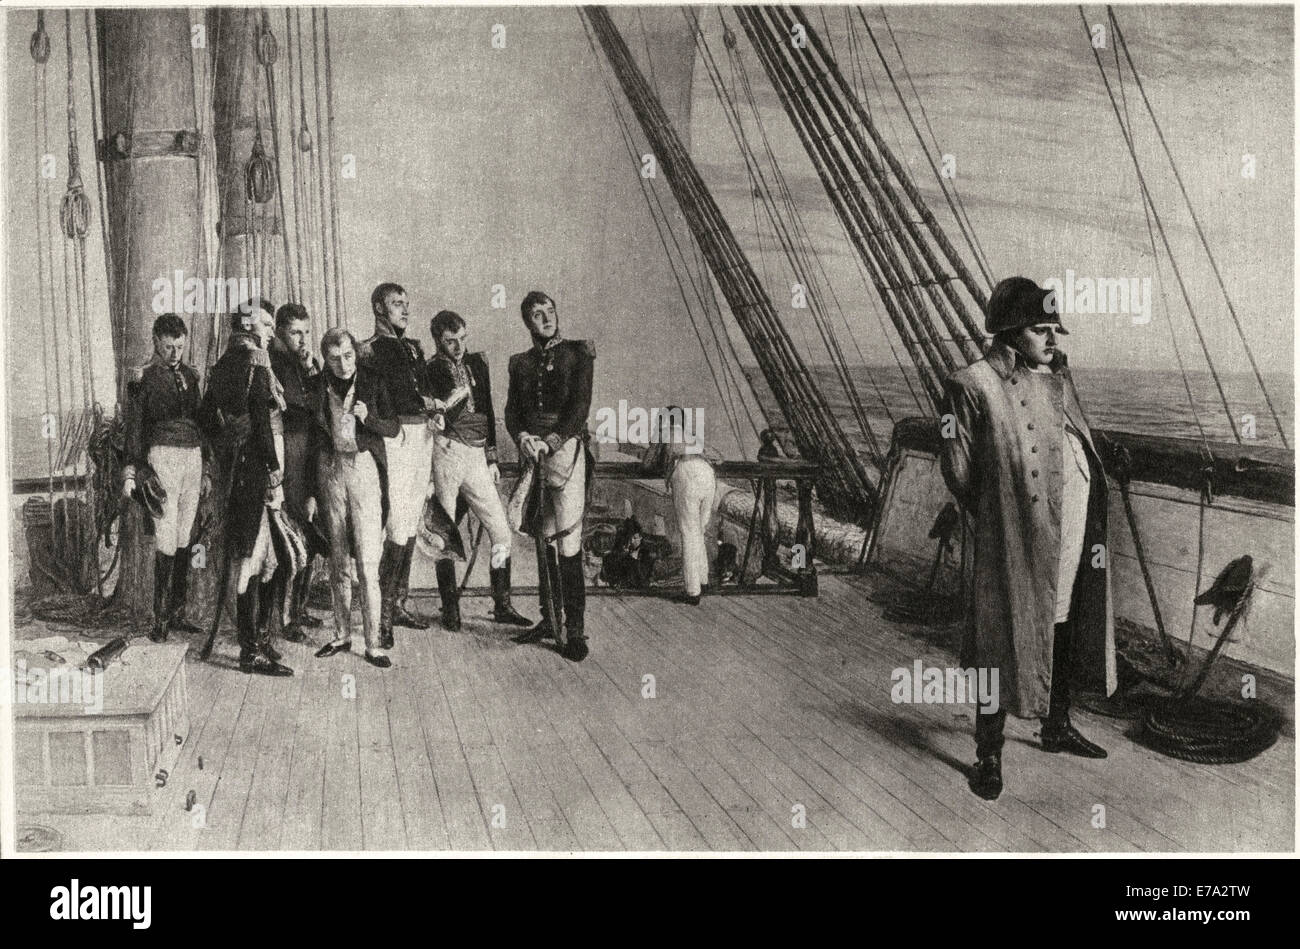 Napoleon on Board the Bellerophon, from the Painting by W. Q. Orchardson, 1880, Intaglio-Gravure print by Mentor - Stock Image